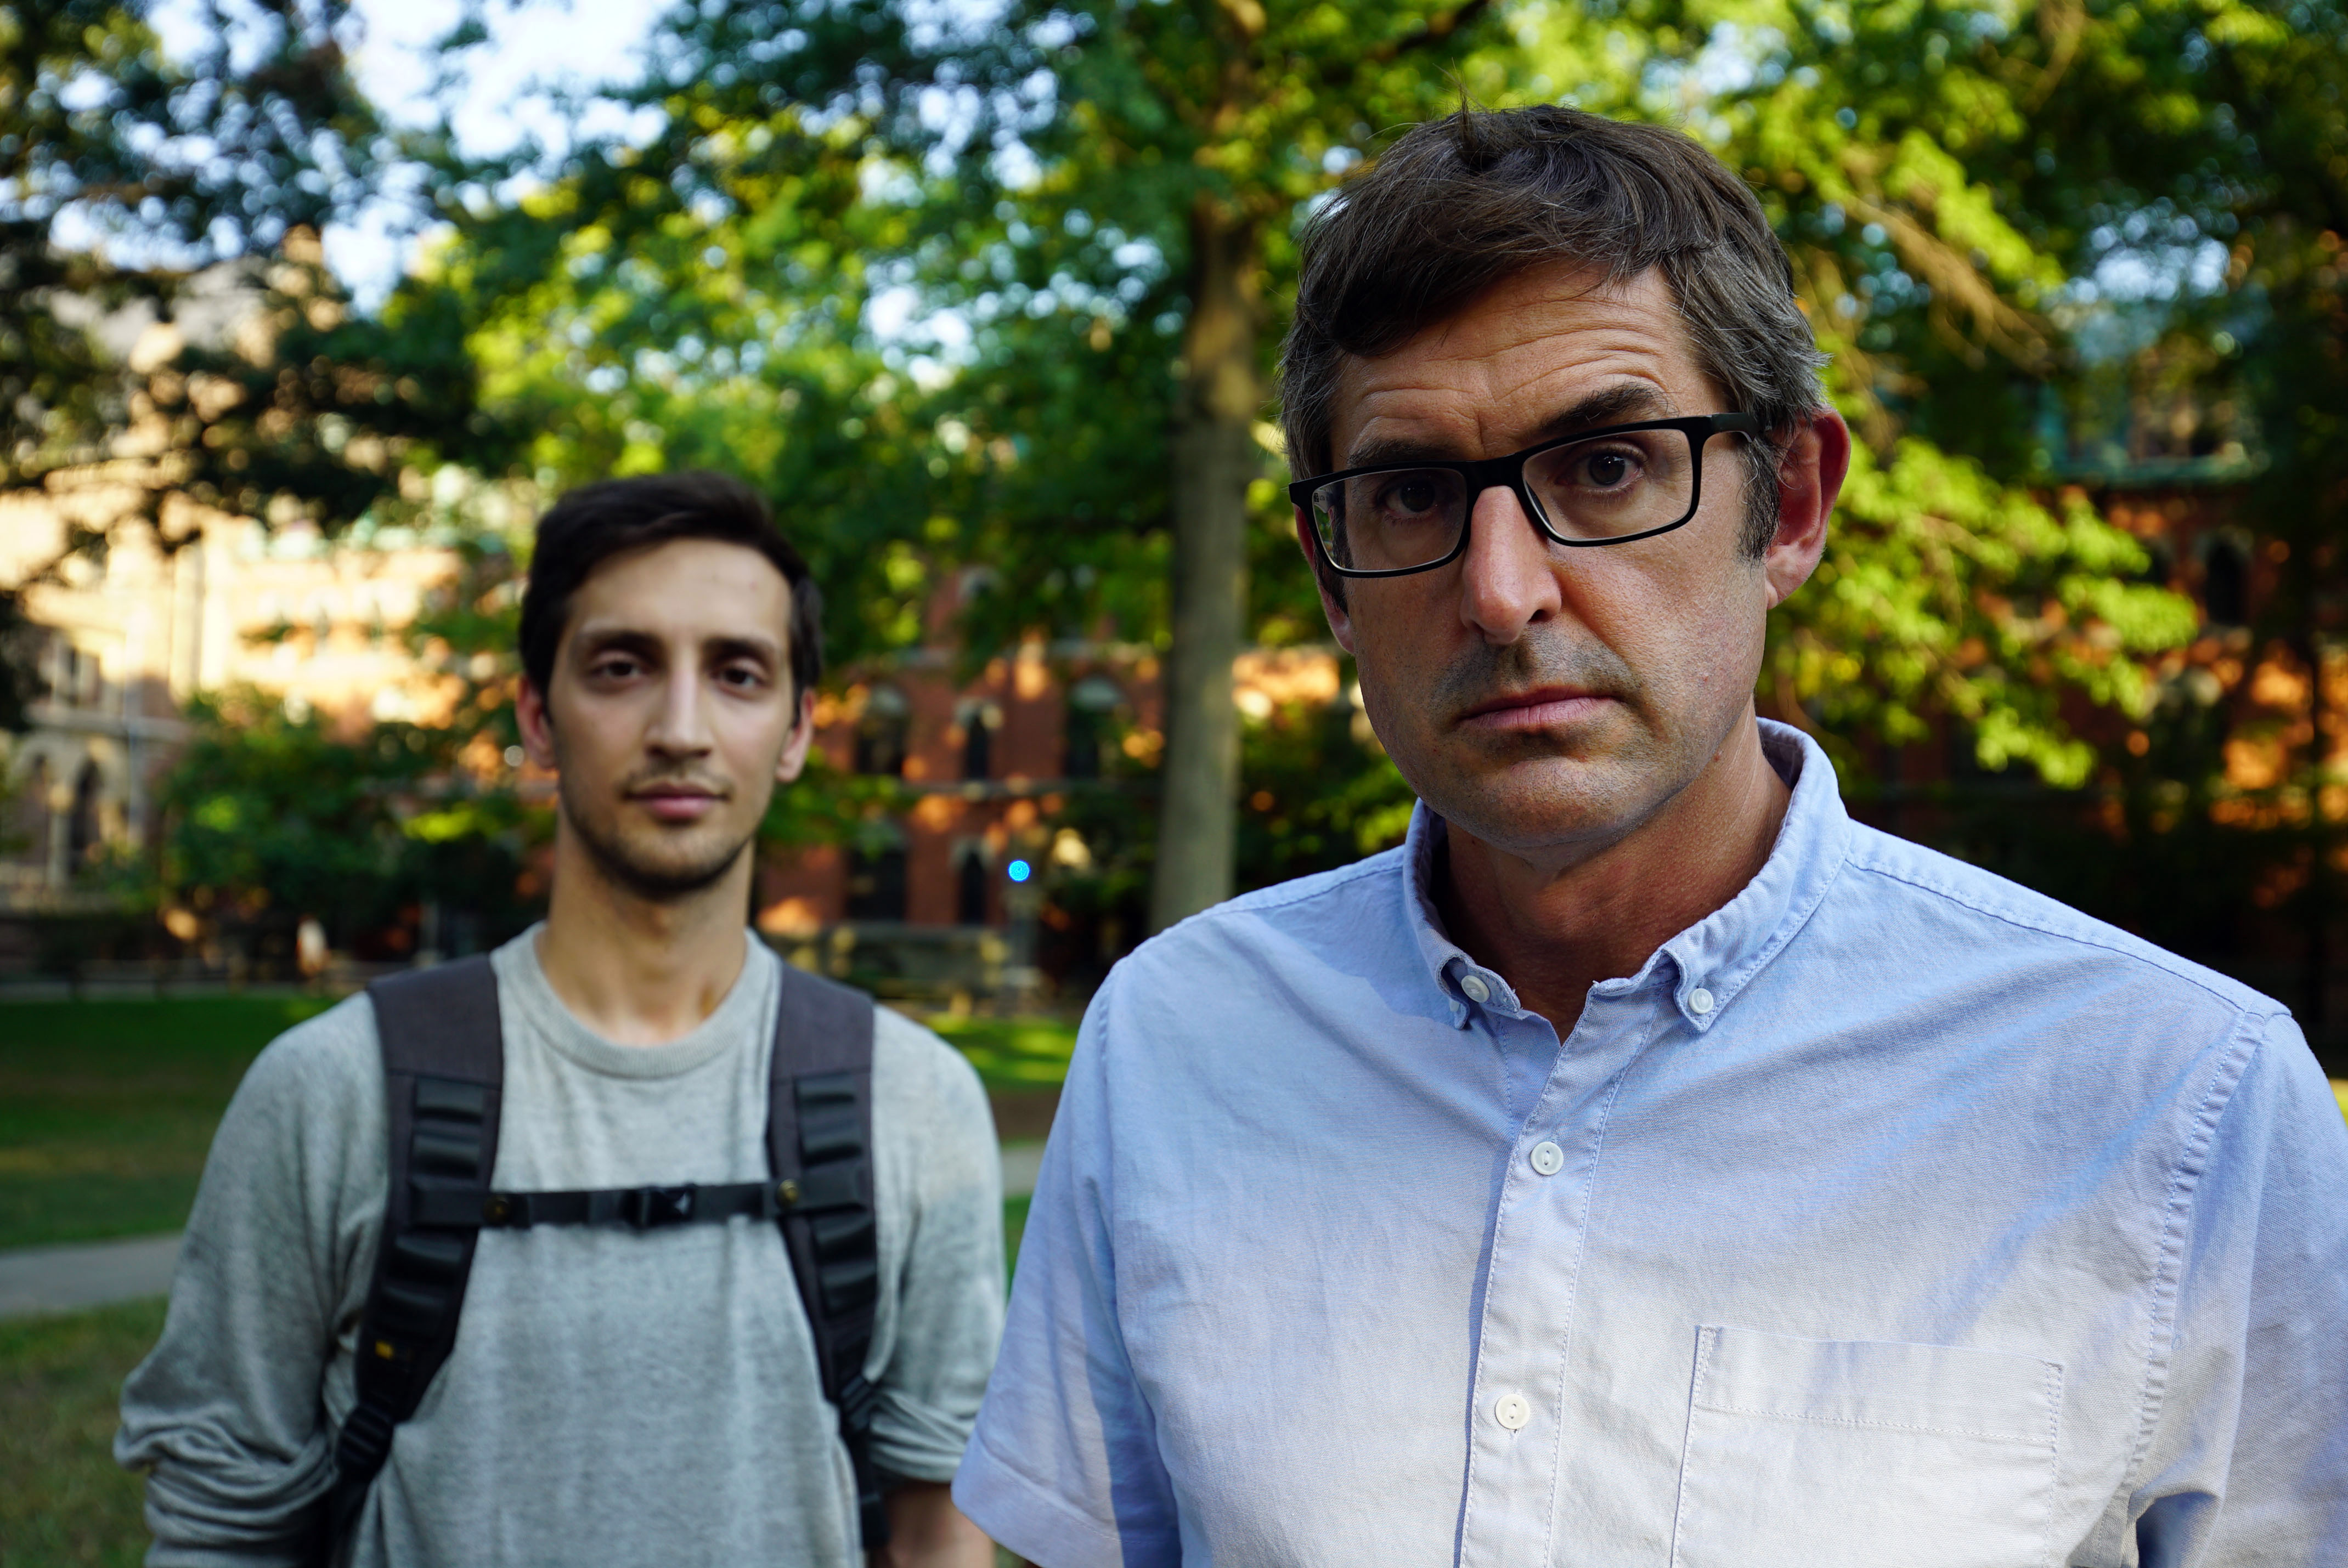 Louis Theroux's latest documentary, The Night In Question